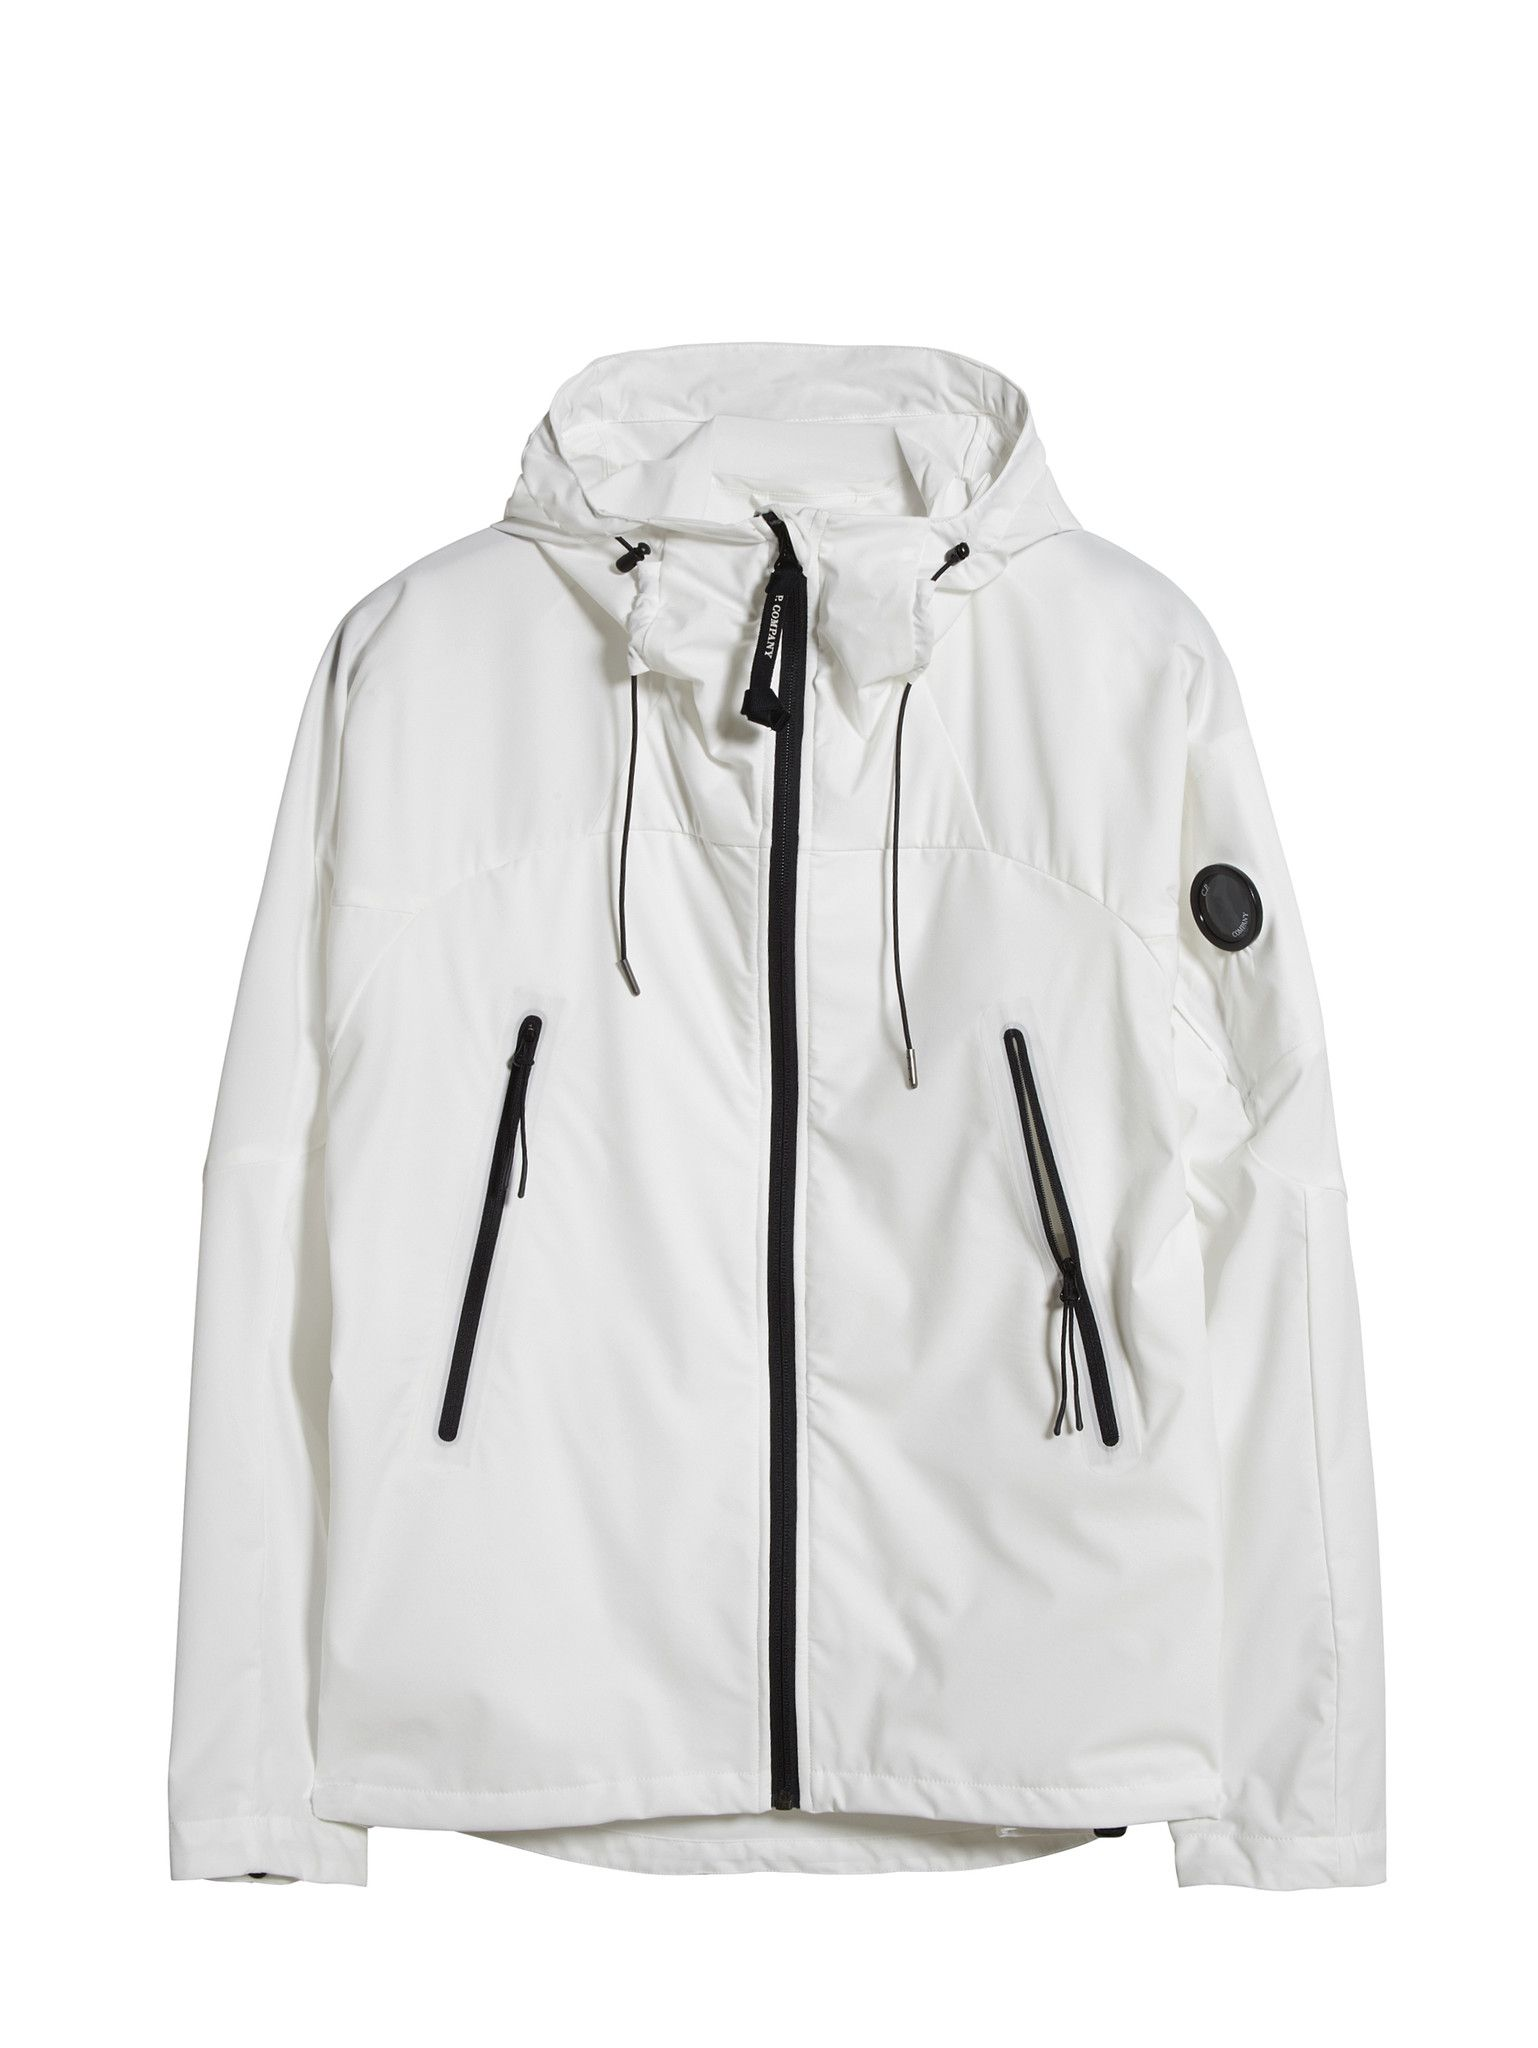 C.P. Company T-Mack ML Jacket in White | C.P. COMPANY OUTERWEAR ...